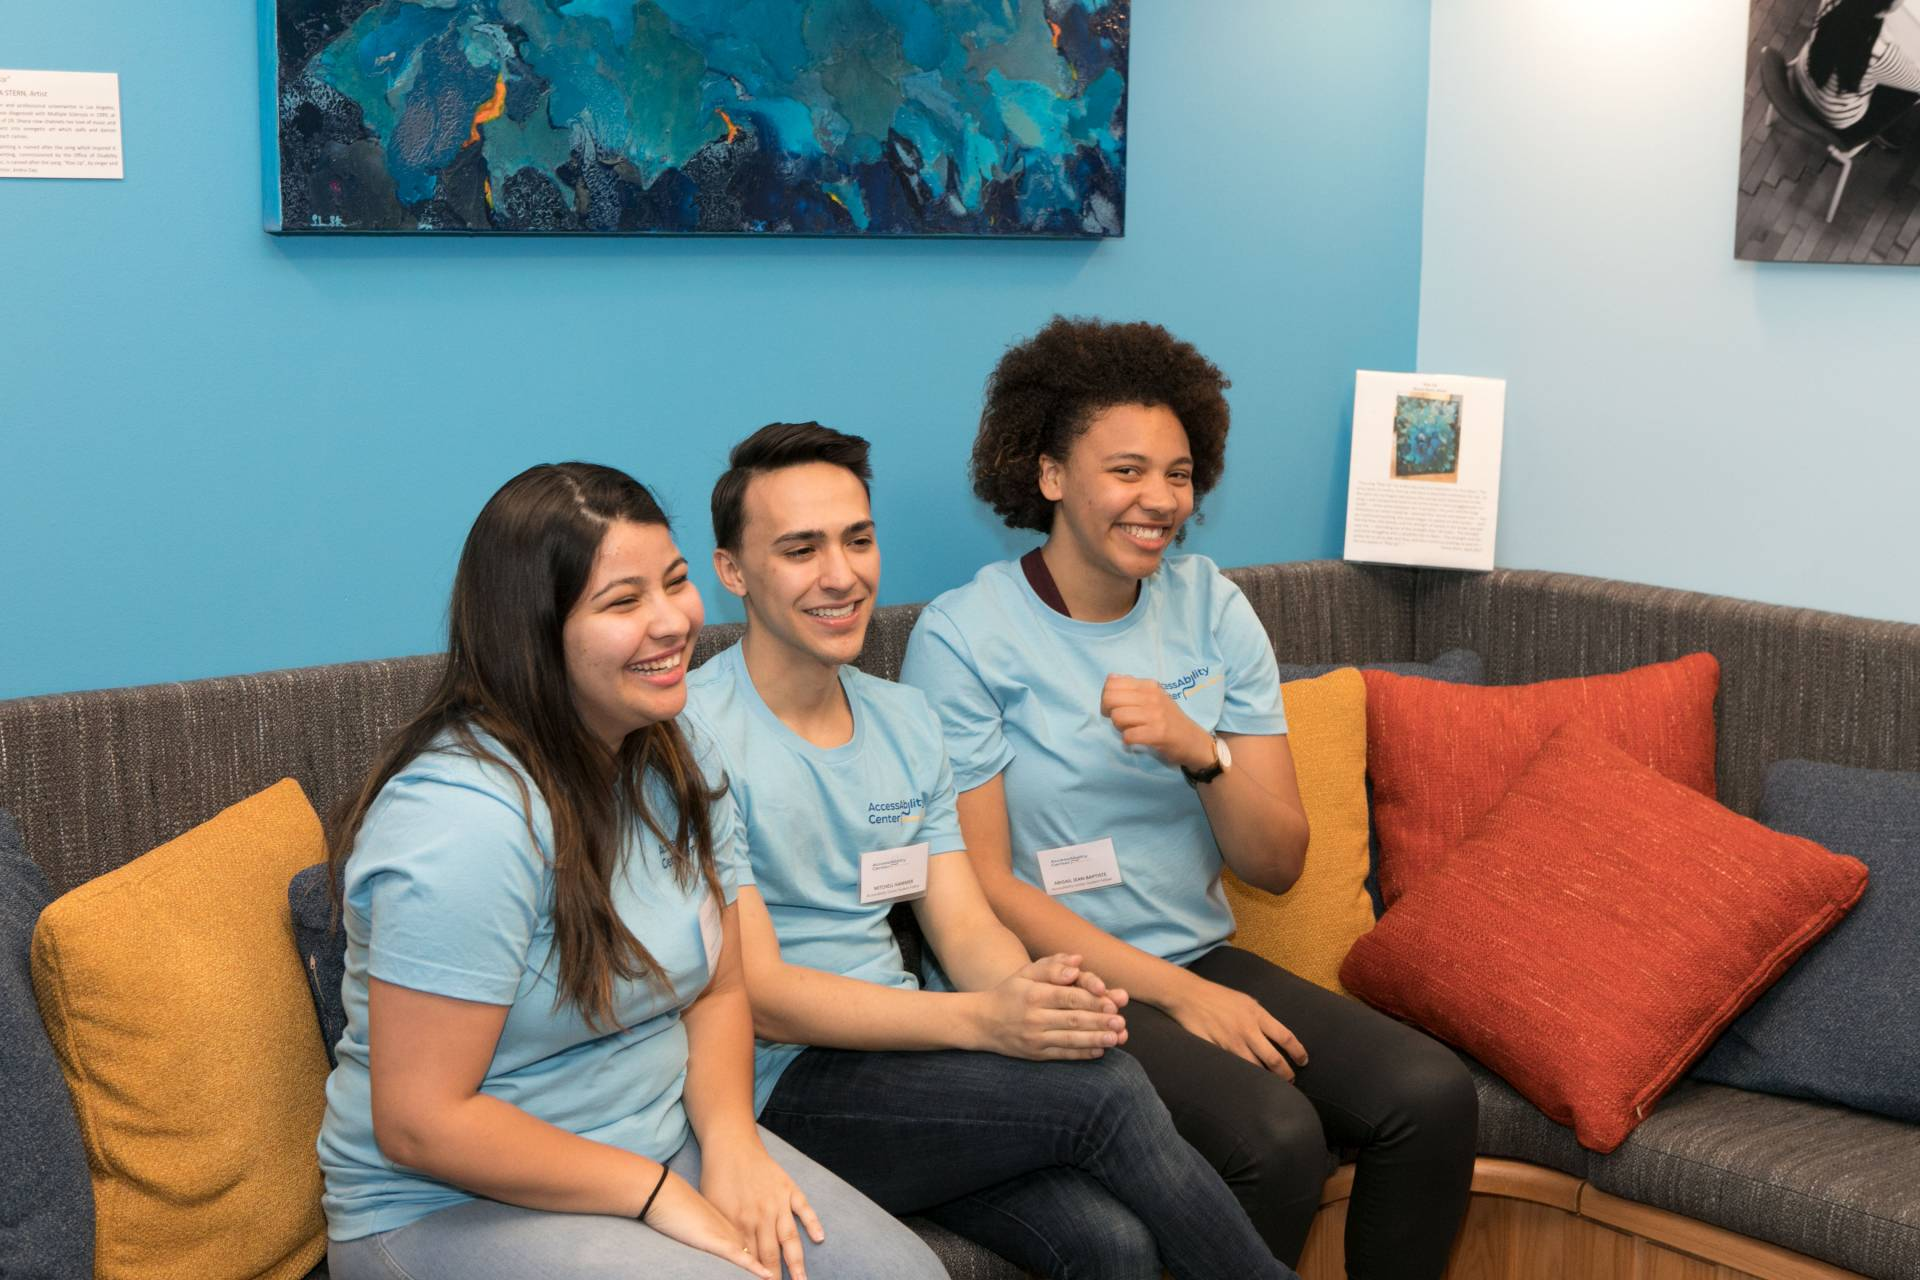 Office of Disability Services' student fellows, from left, Monica Magalhaes, Mitchell Hammer and Abby Jean-Baptiste sitting on couch